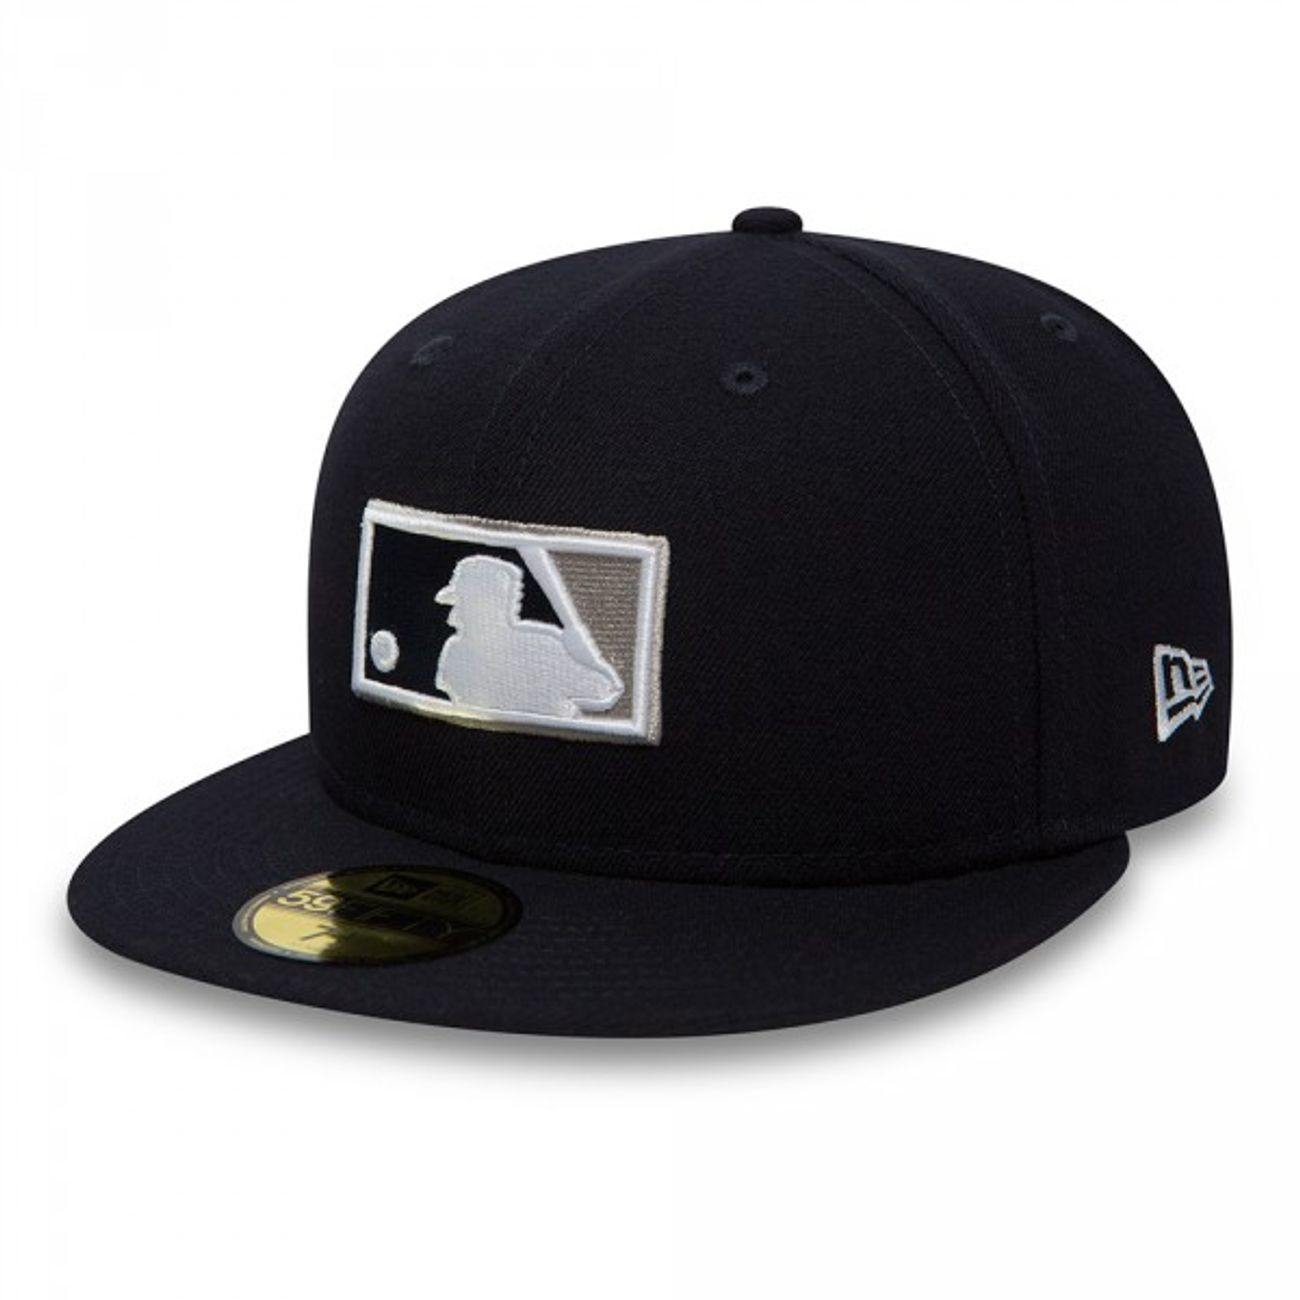 adulte NEW ERA Casquette MLB New York Yankees New Era university club  59fifty Noir taille casquette ... 64f2f84dbd1c